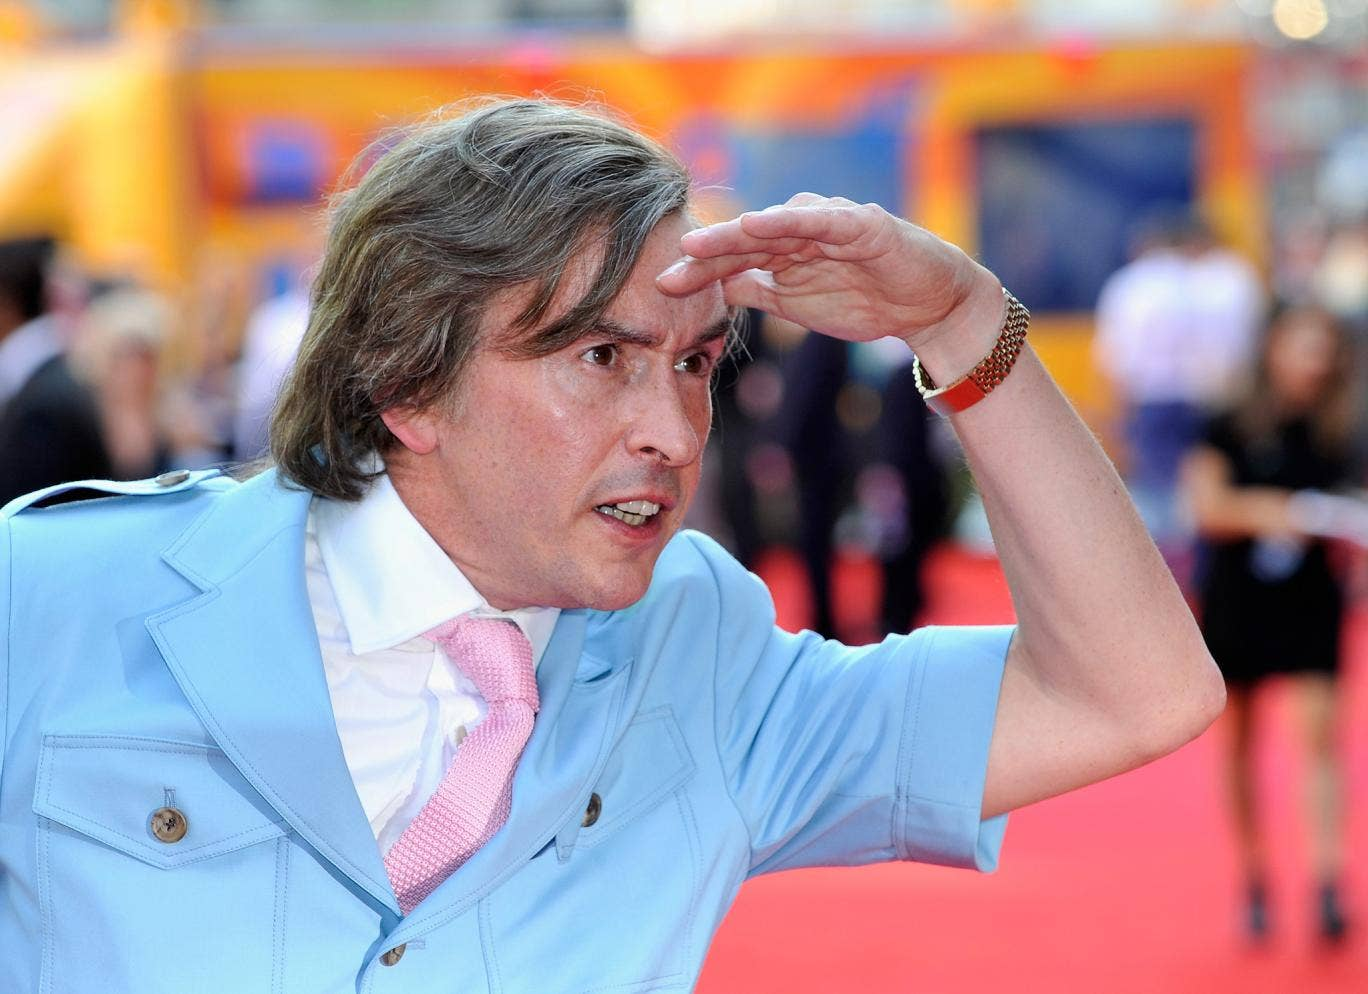 Alan Partridge, aka Steve Coogan, greets fans at the London premiere of Alpha Papa